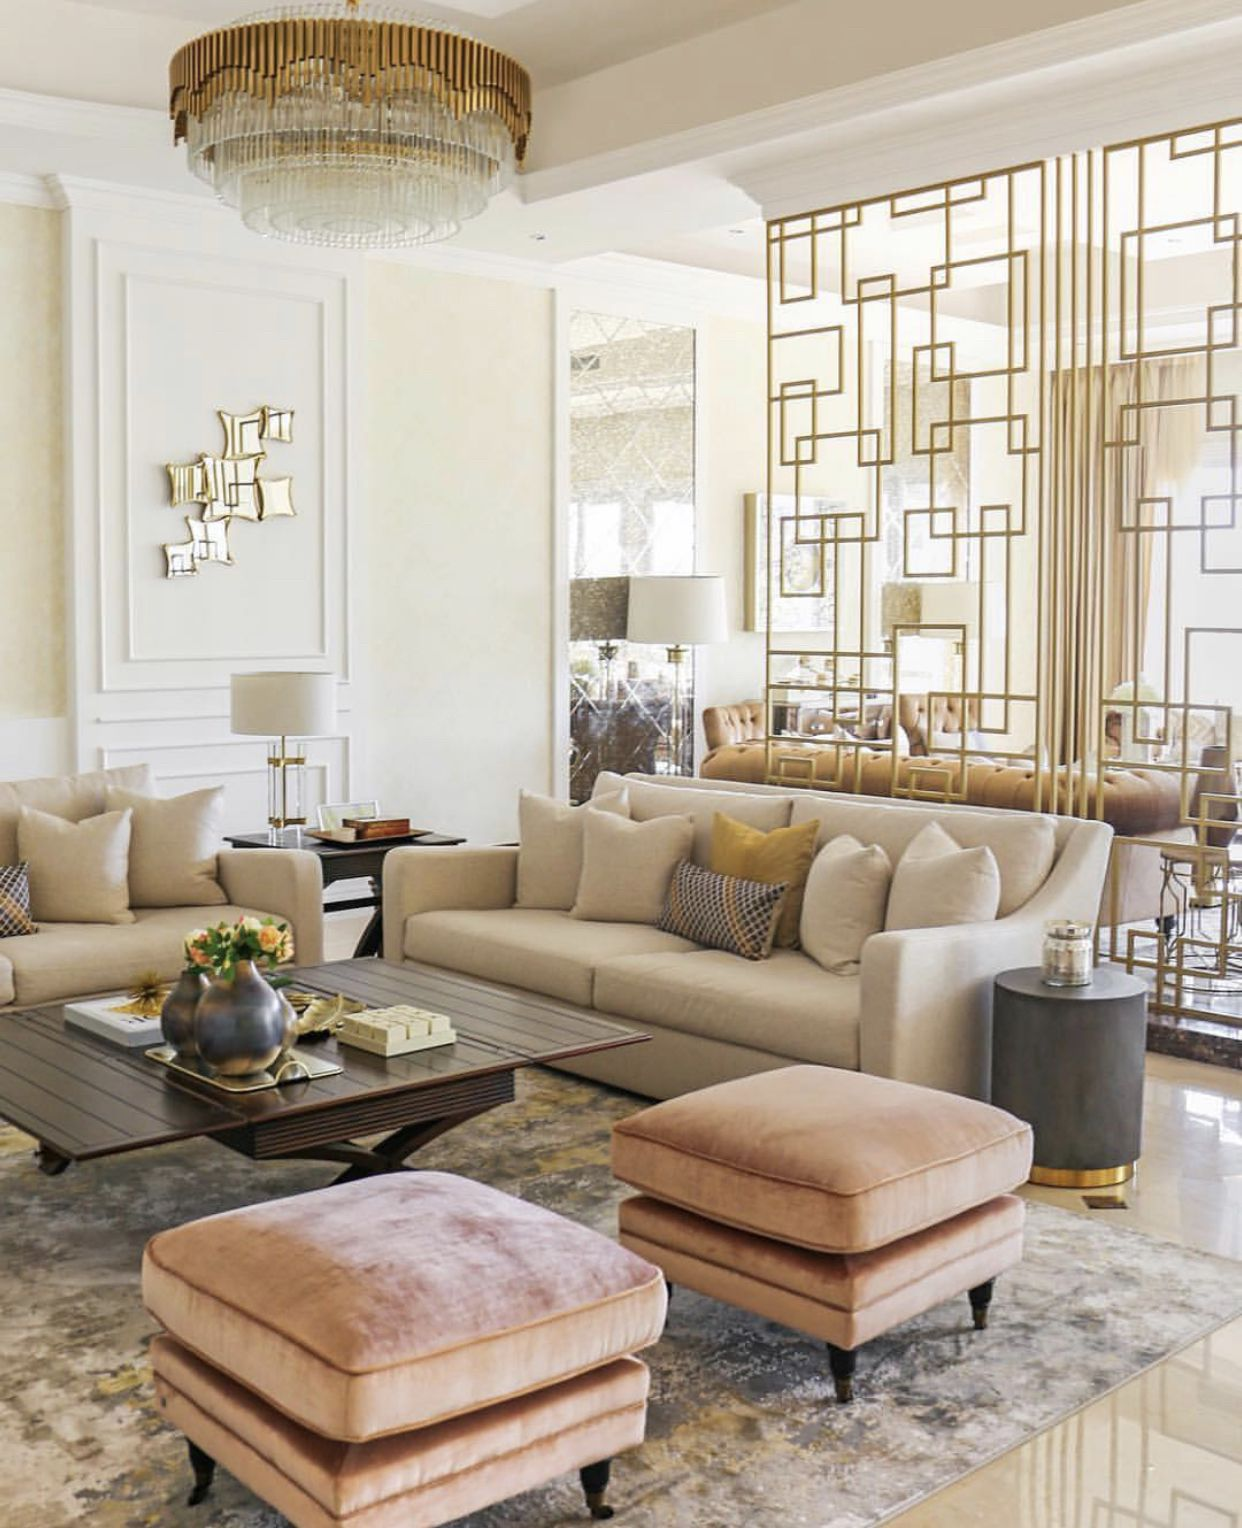 Making Your Living Room Look and Feel More Luxurious - JESSICA